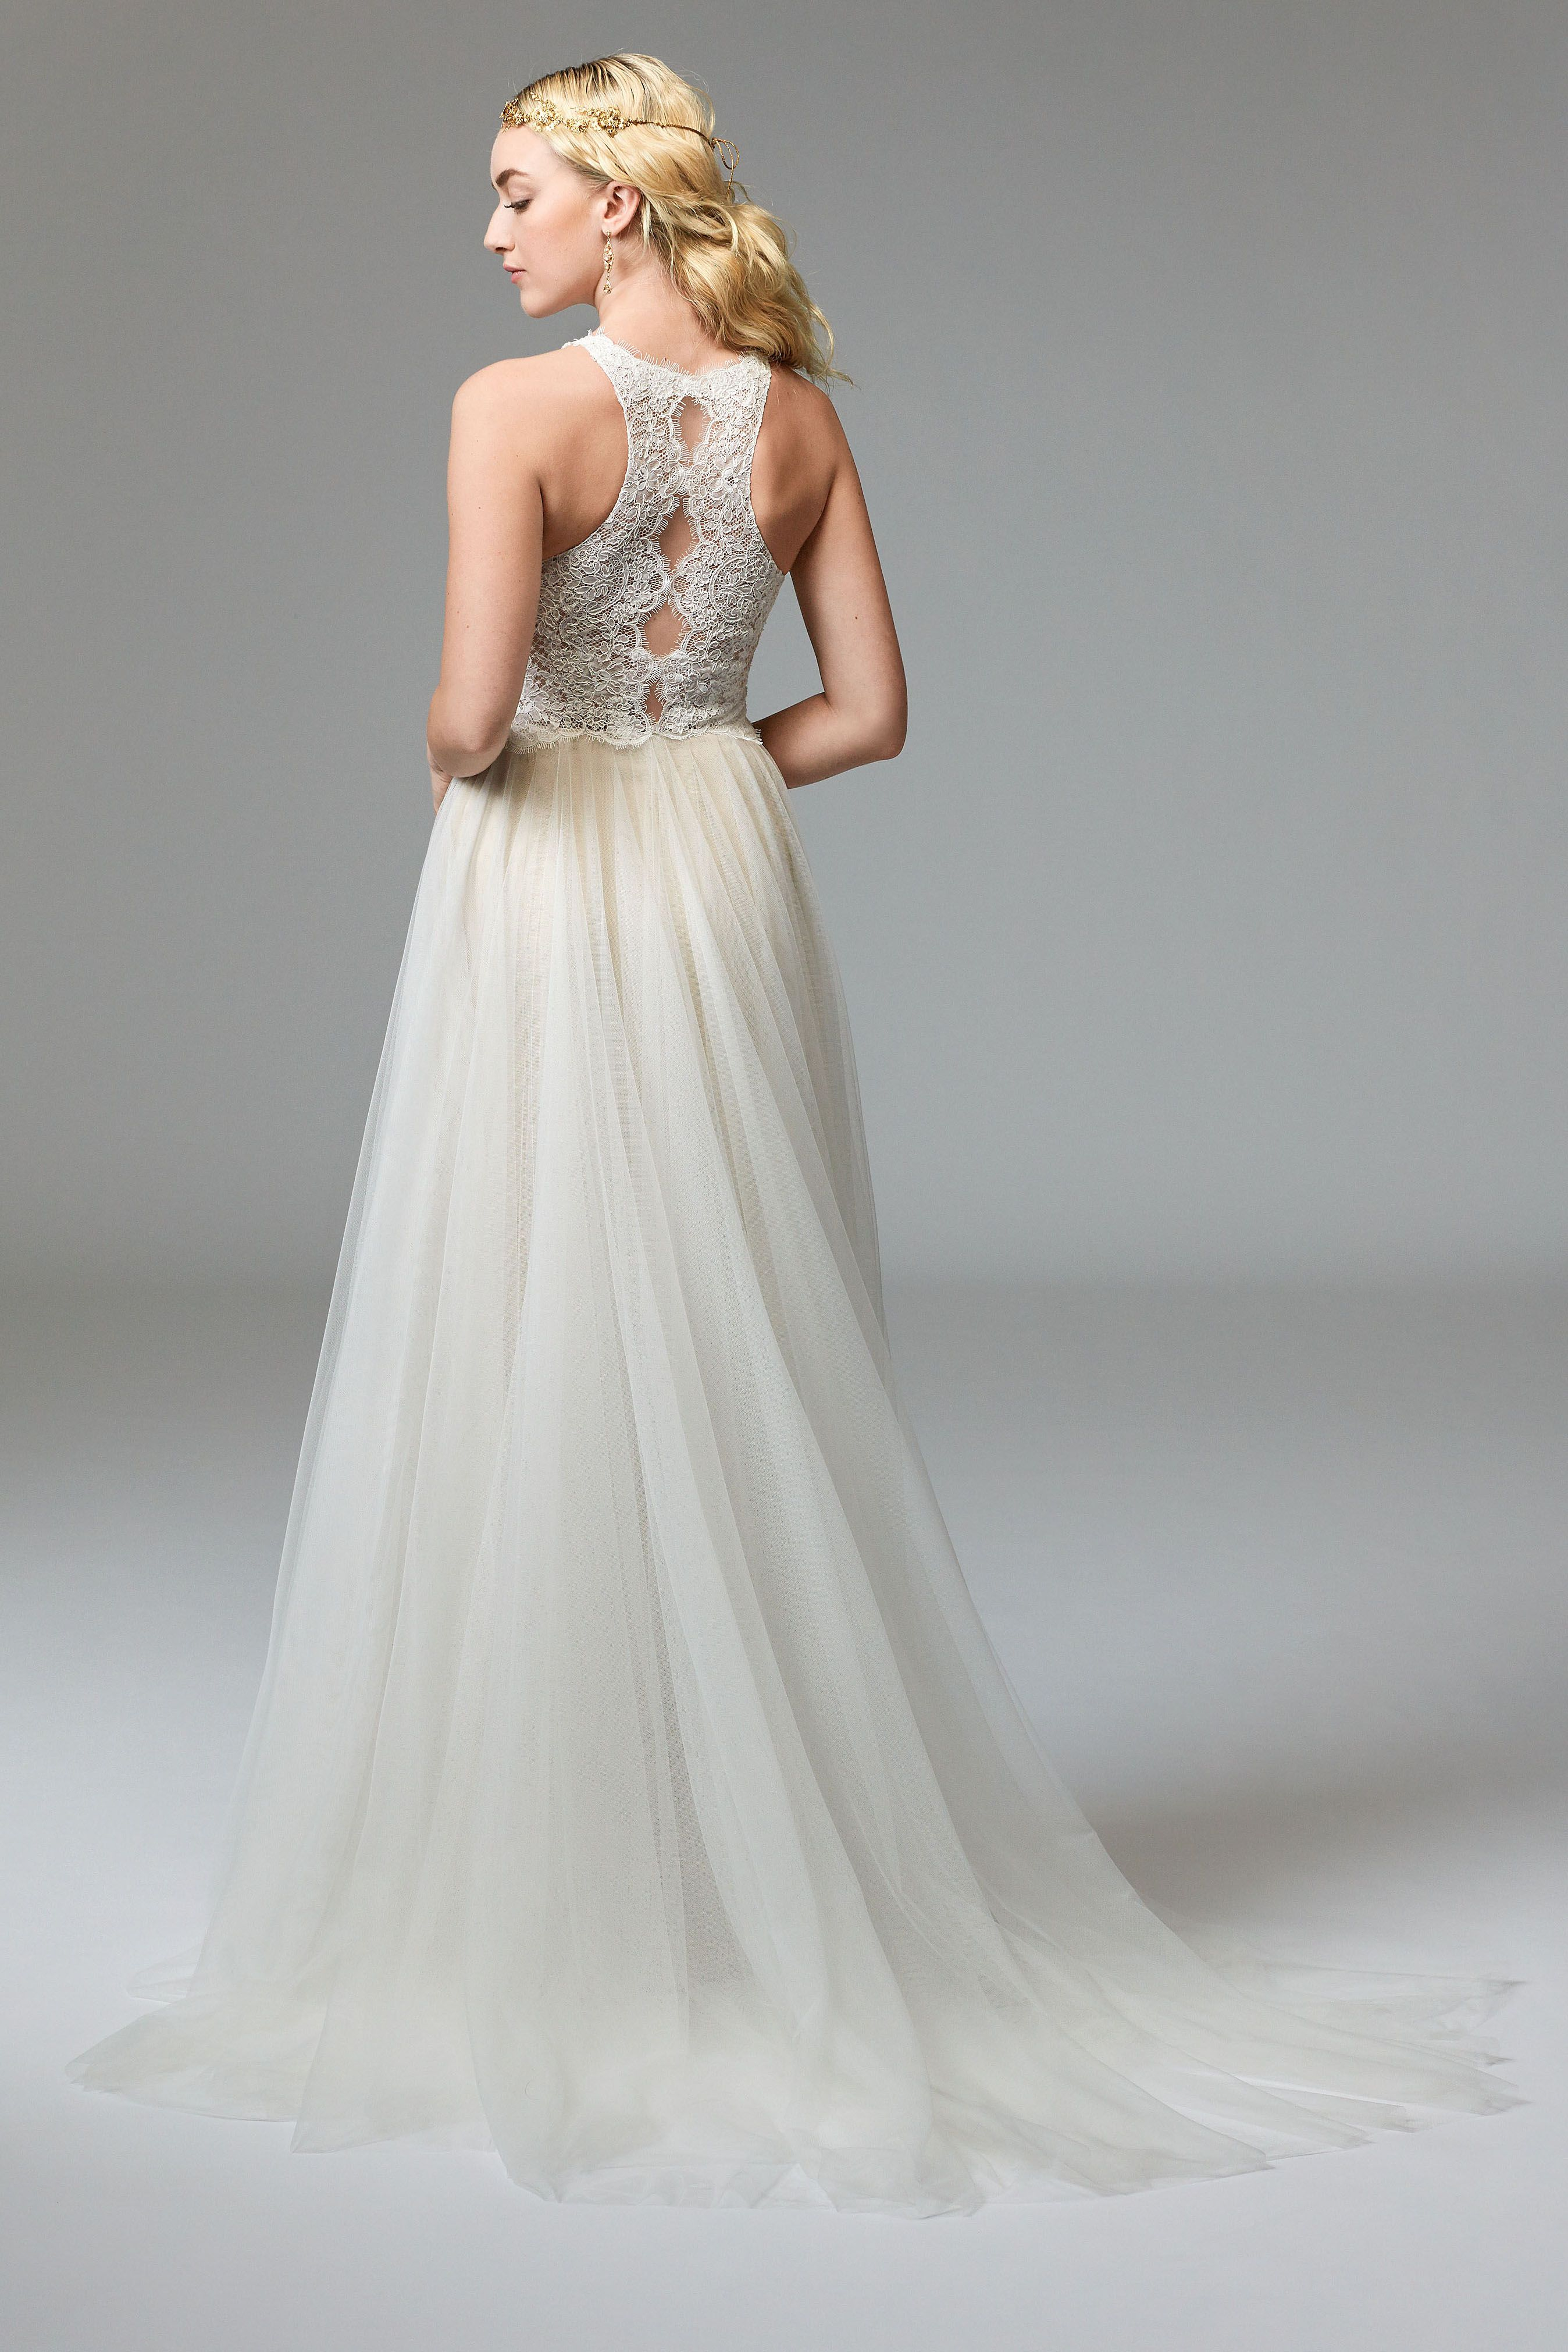 watterswtoo Willowby Style 57708 Vira Wedding Gown. | Here Comes the ...